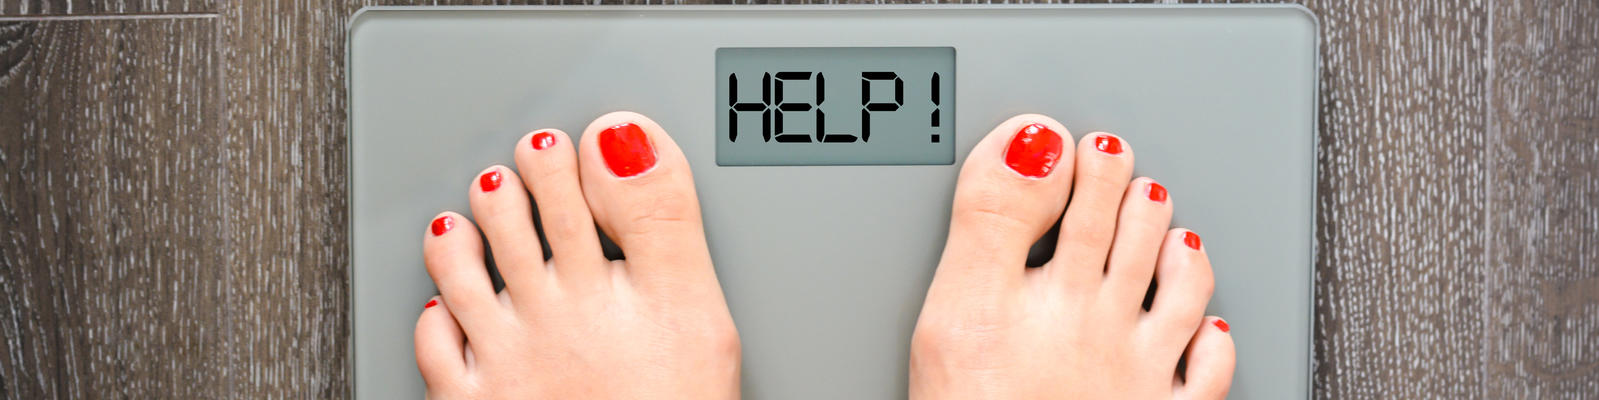 How Not to Gain Weight on a Cruise (Photo: Eviart/Shutterstock.com)